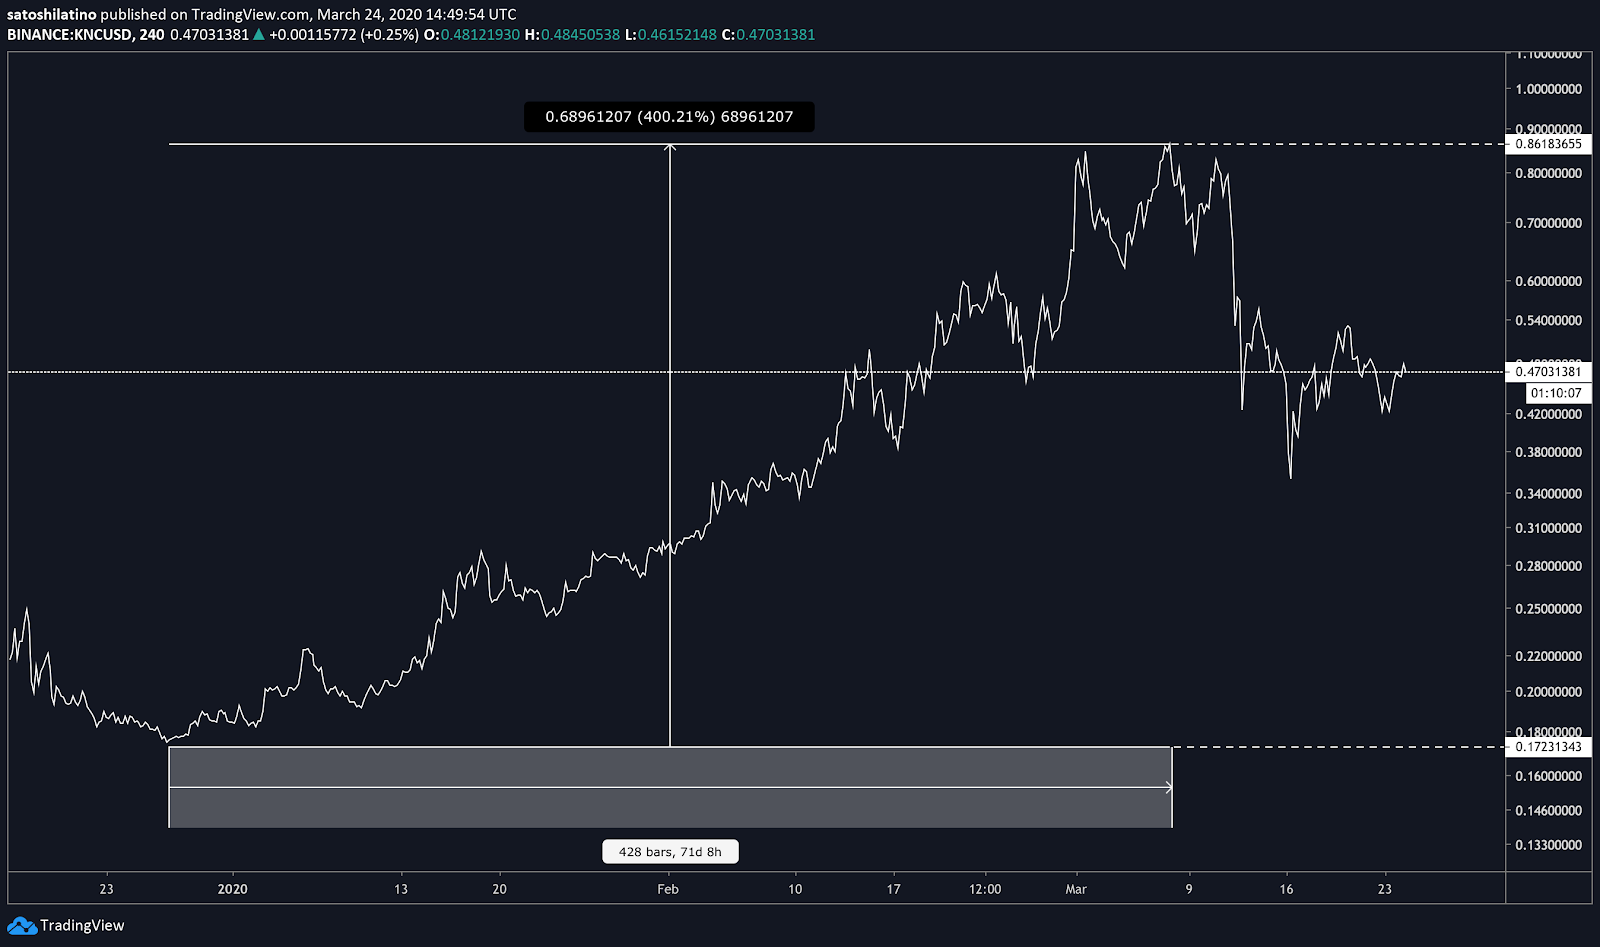 Kyber Network US dollar price chart